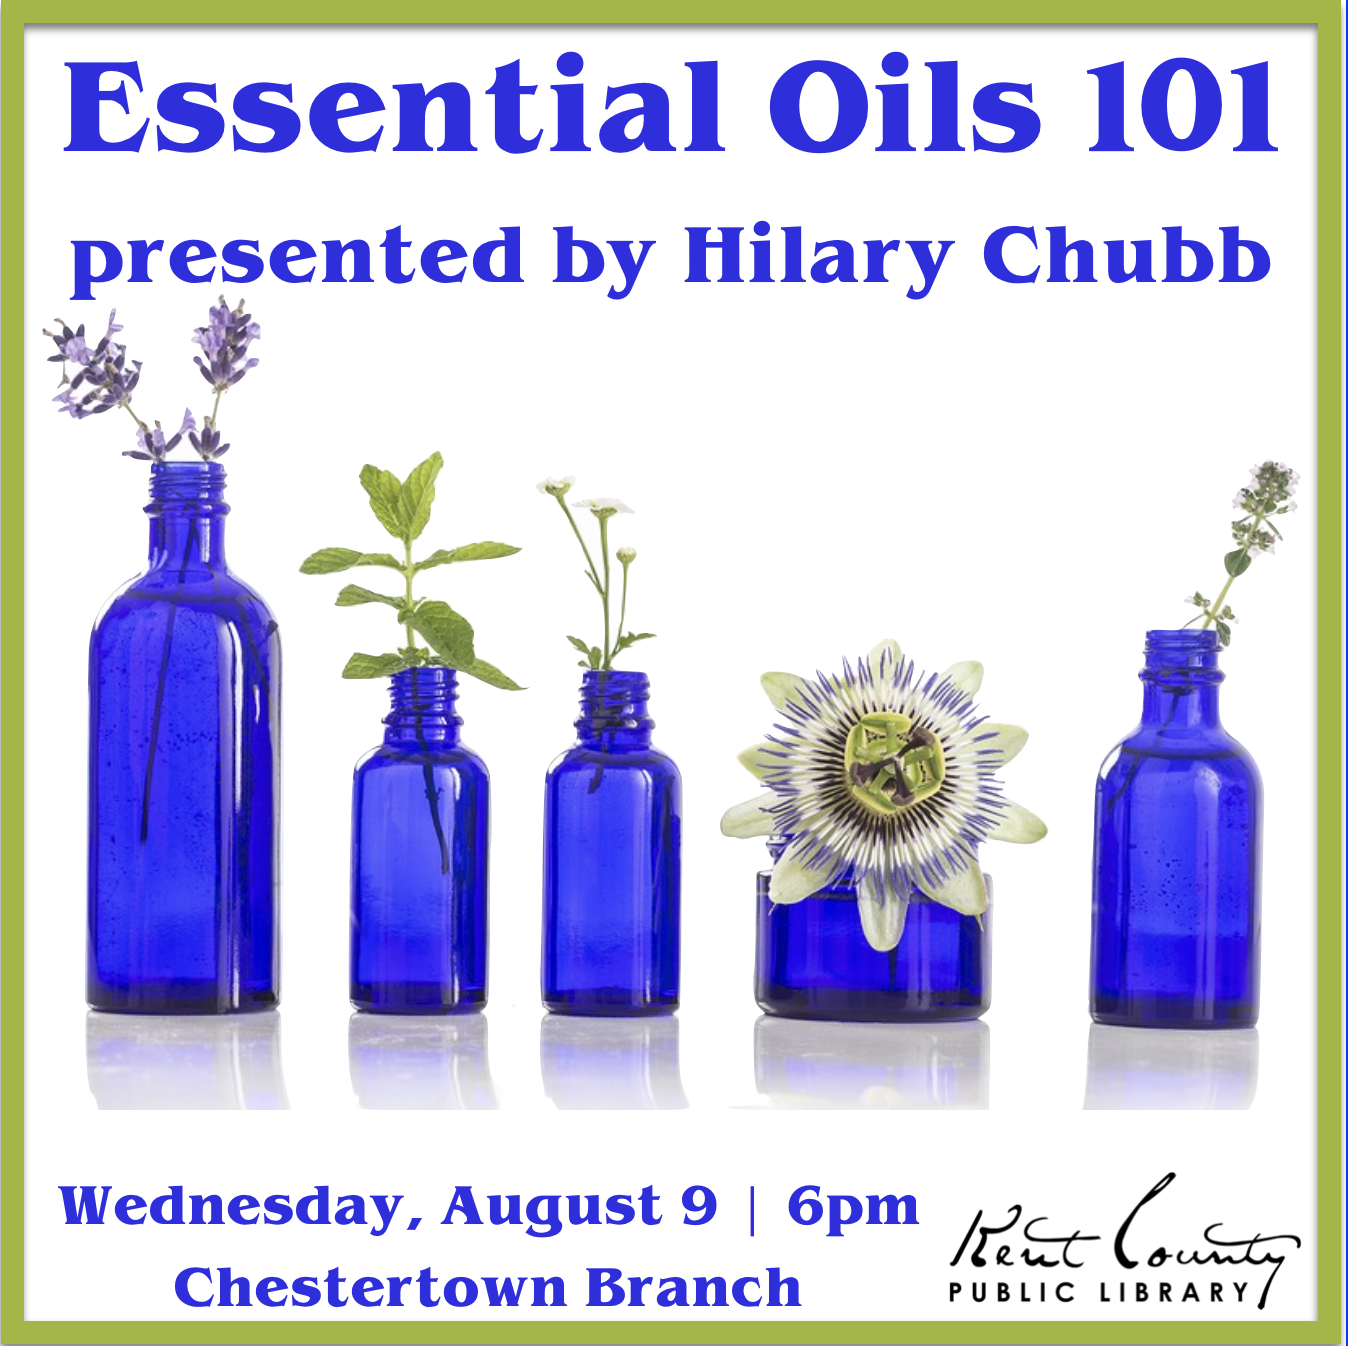 Essential Oils 101 presented by Hilary Chubb